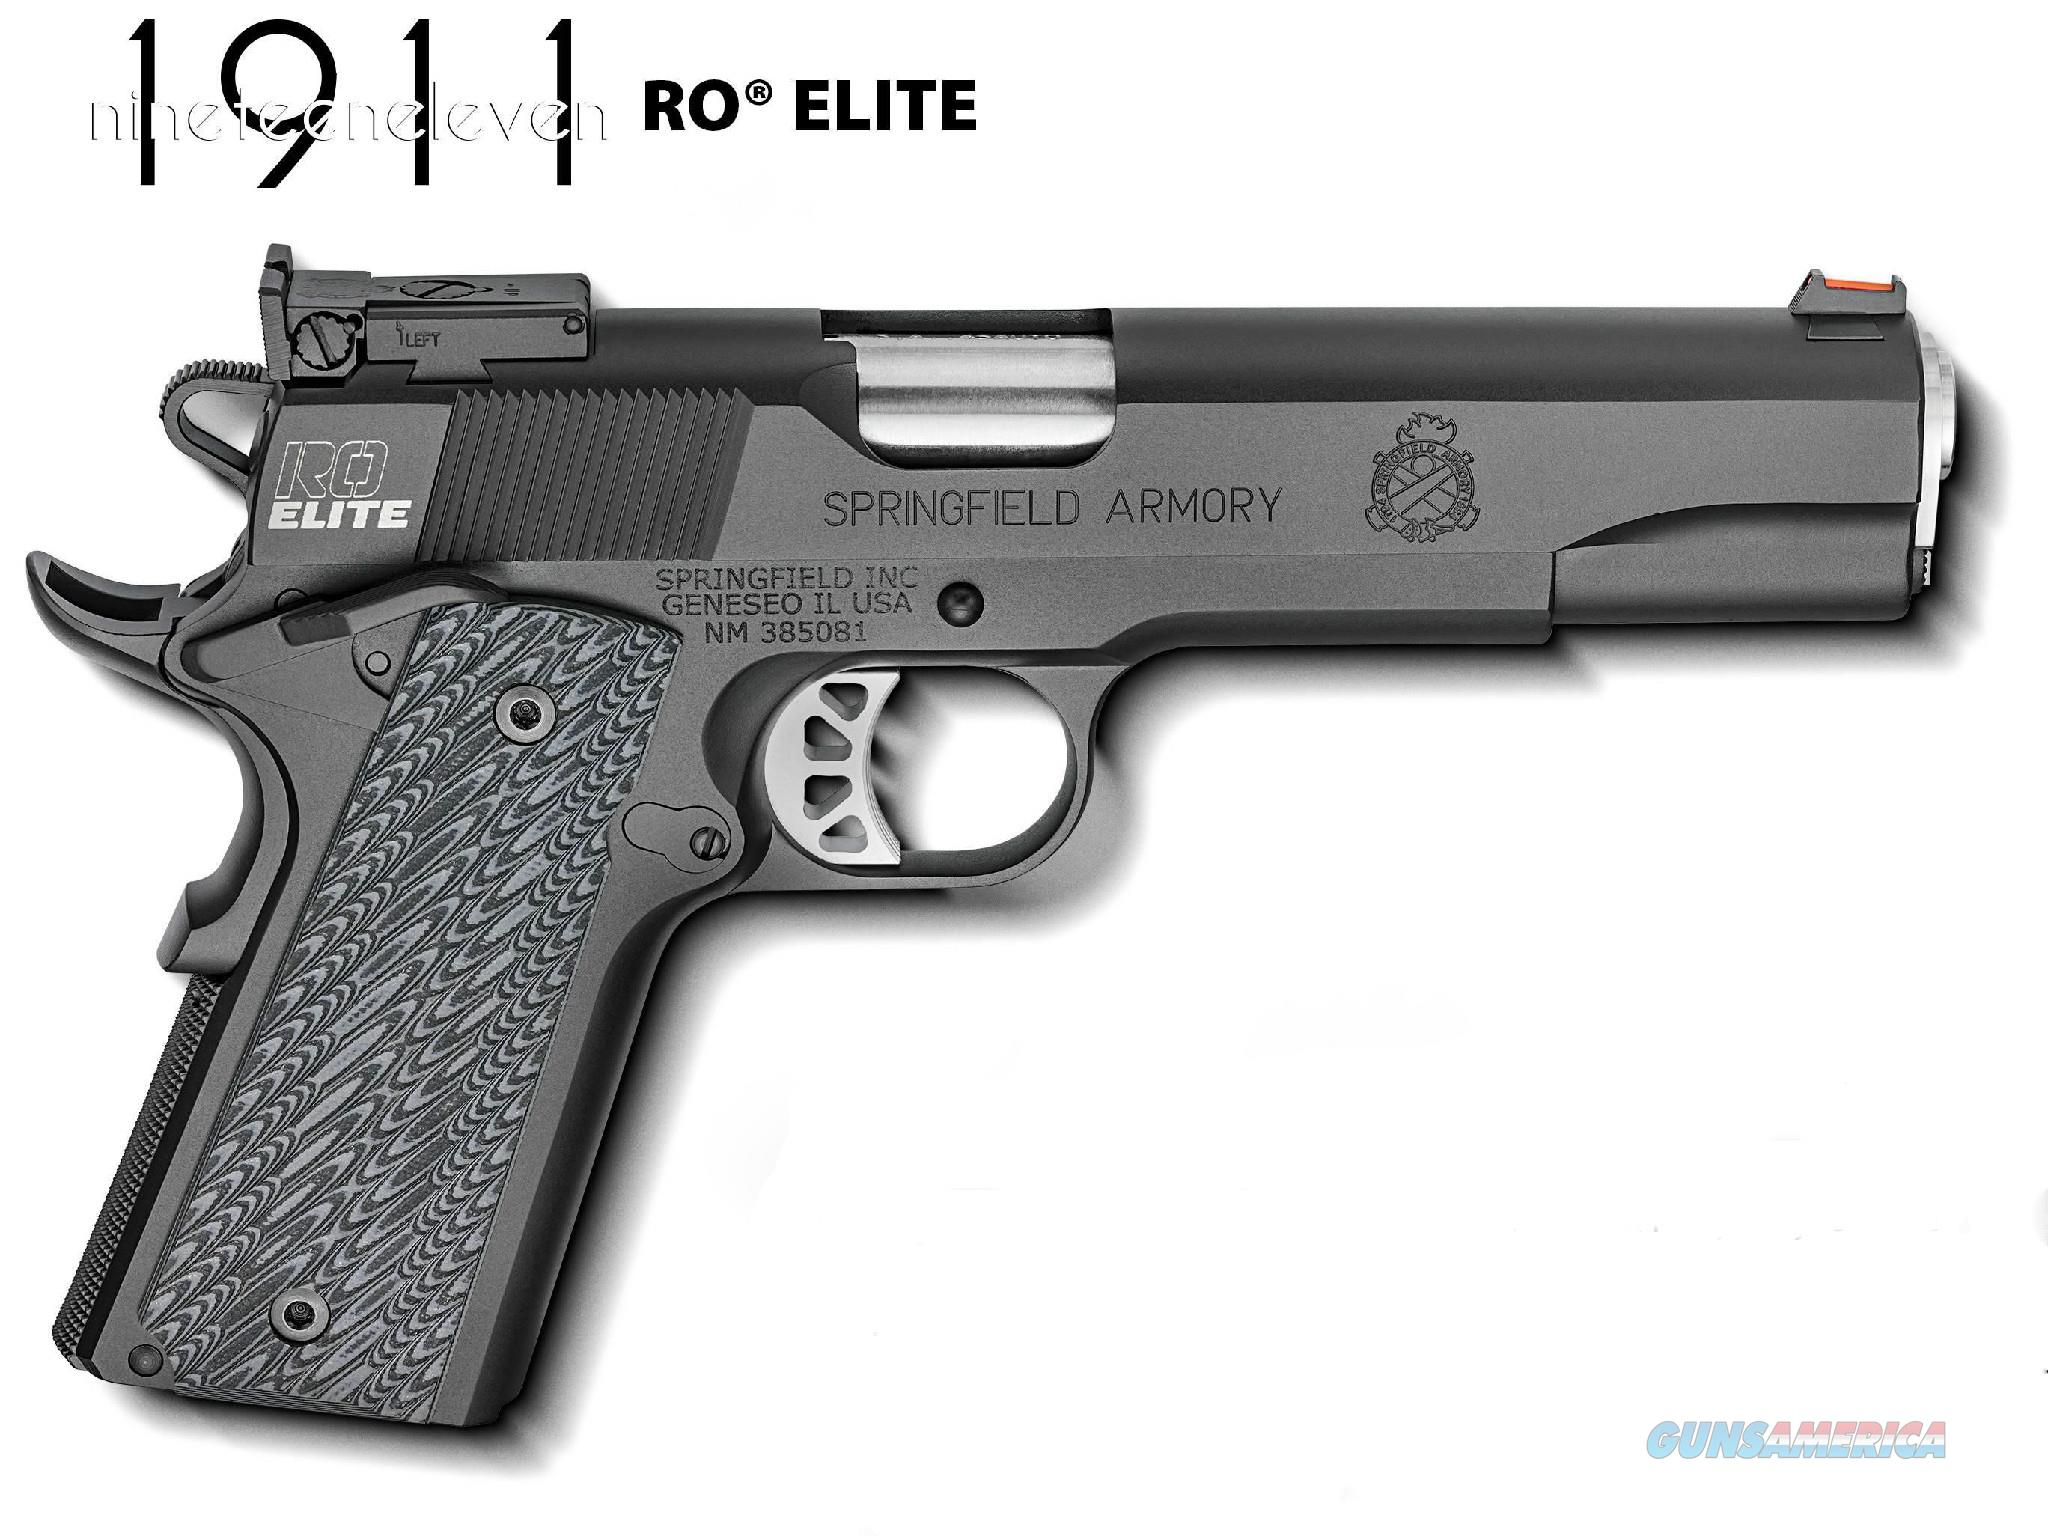 Springfield 1911 RO Elite Target 9mm FO G10 PI9129ER *NEW* 4 Mags Gear Pkg  Guns > Pistols > Springfield Armory Pistols > 1911 Type